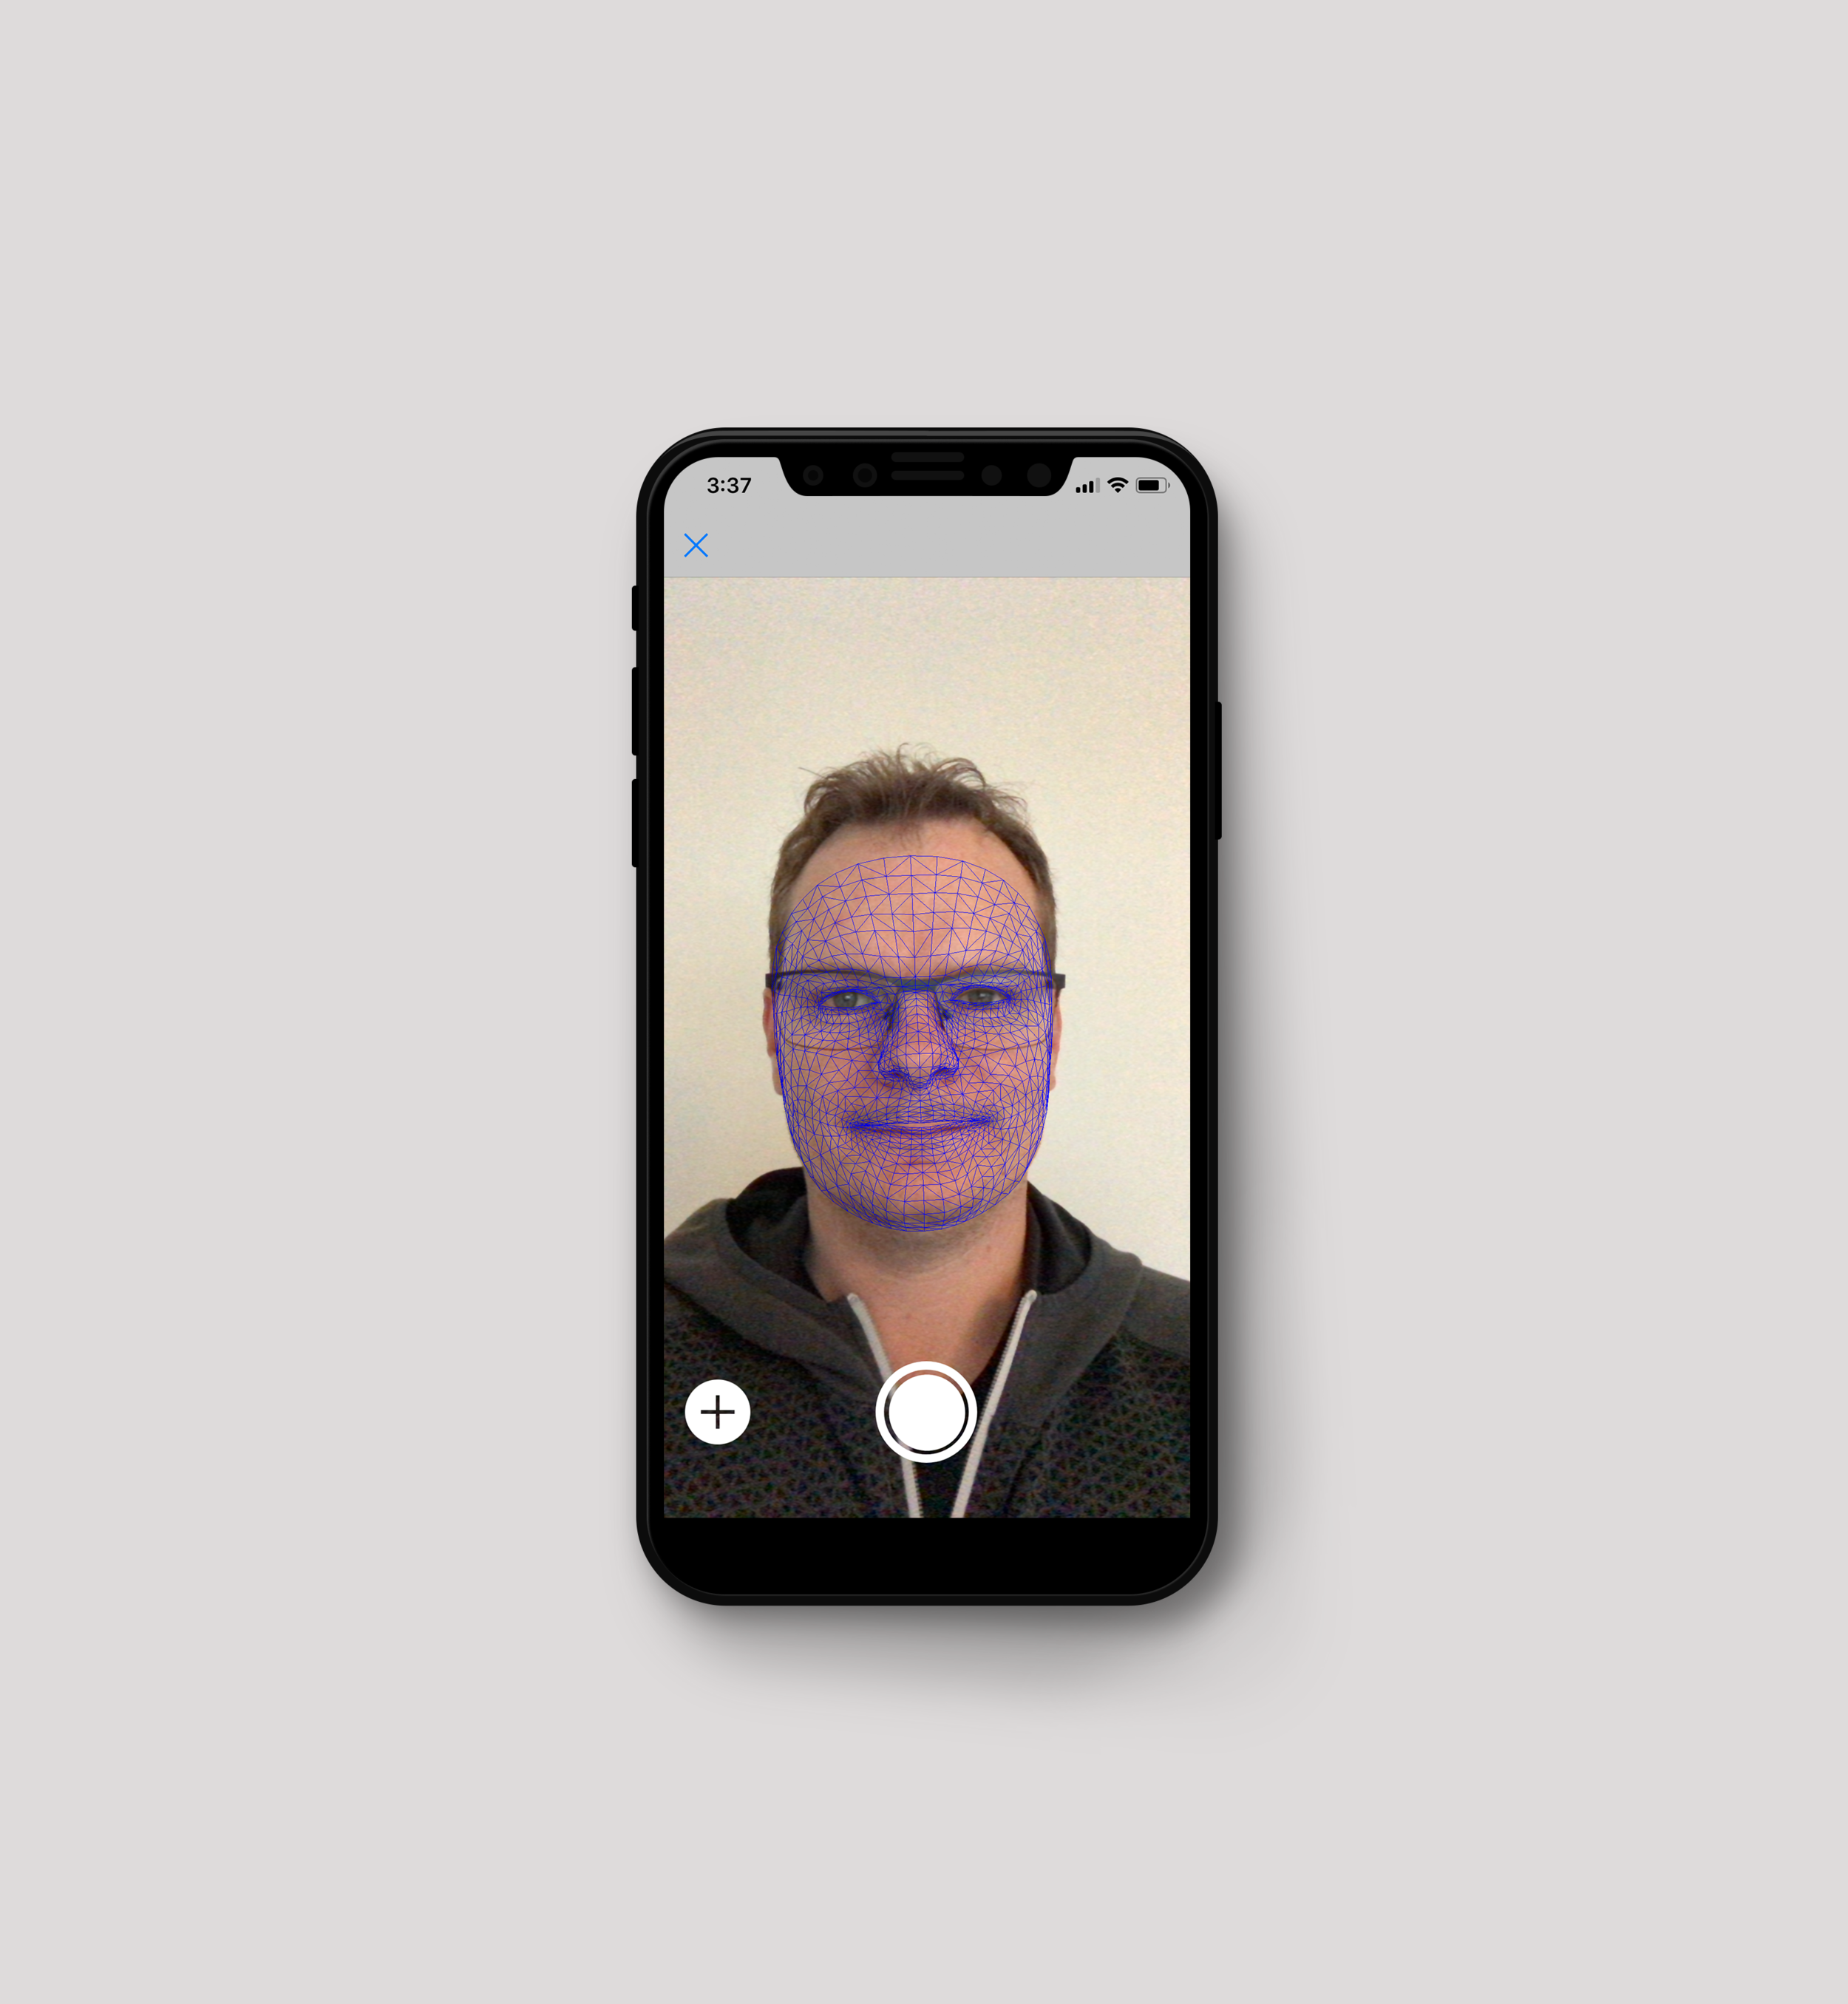 Apple TrueDepth Camera System - By enabling this easy to use workflow, users will now be able to bring their facial performances directly into Cinema 4D to create stunning VisualEffects, or to control other characters to bring their animations to life. Combining the simplicity of the App with power of Cinema 4D, it will bring facial motion capture to the masses, where it was previously only available to the select few.